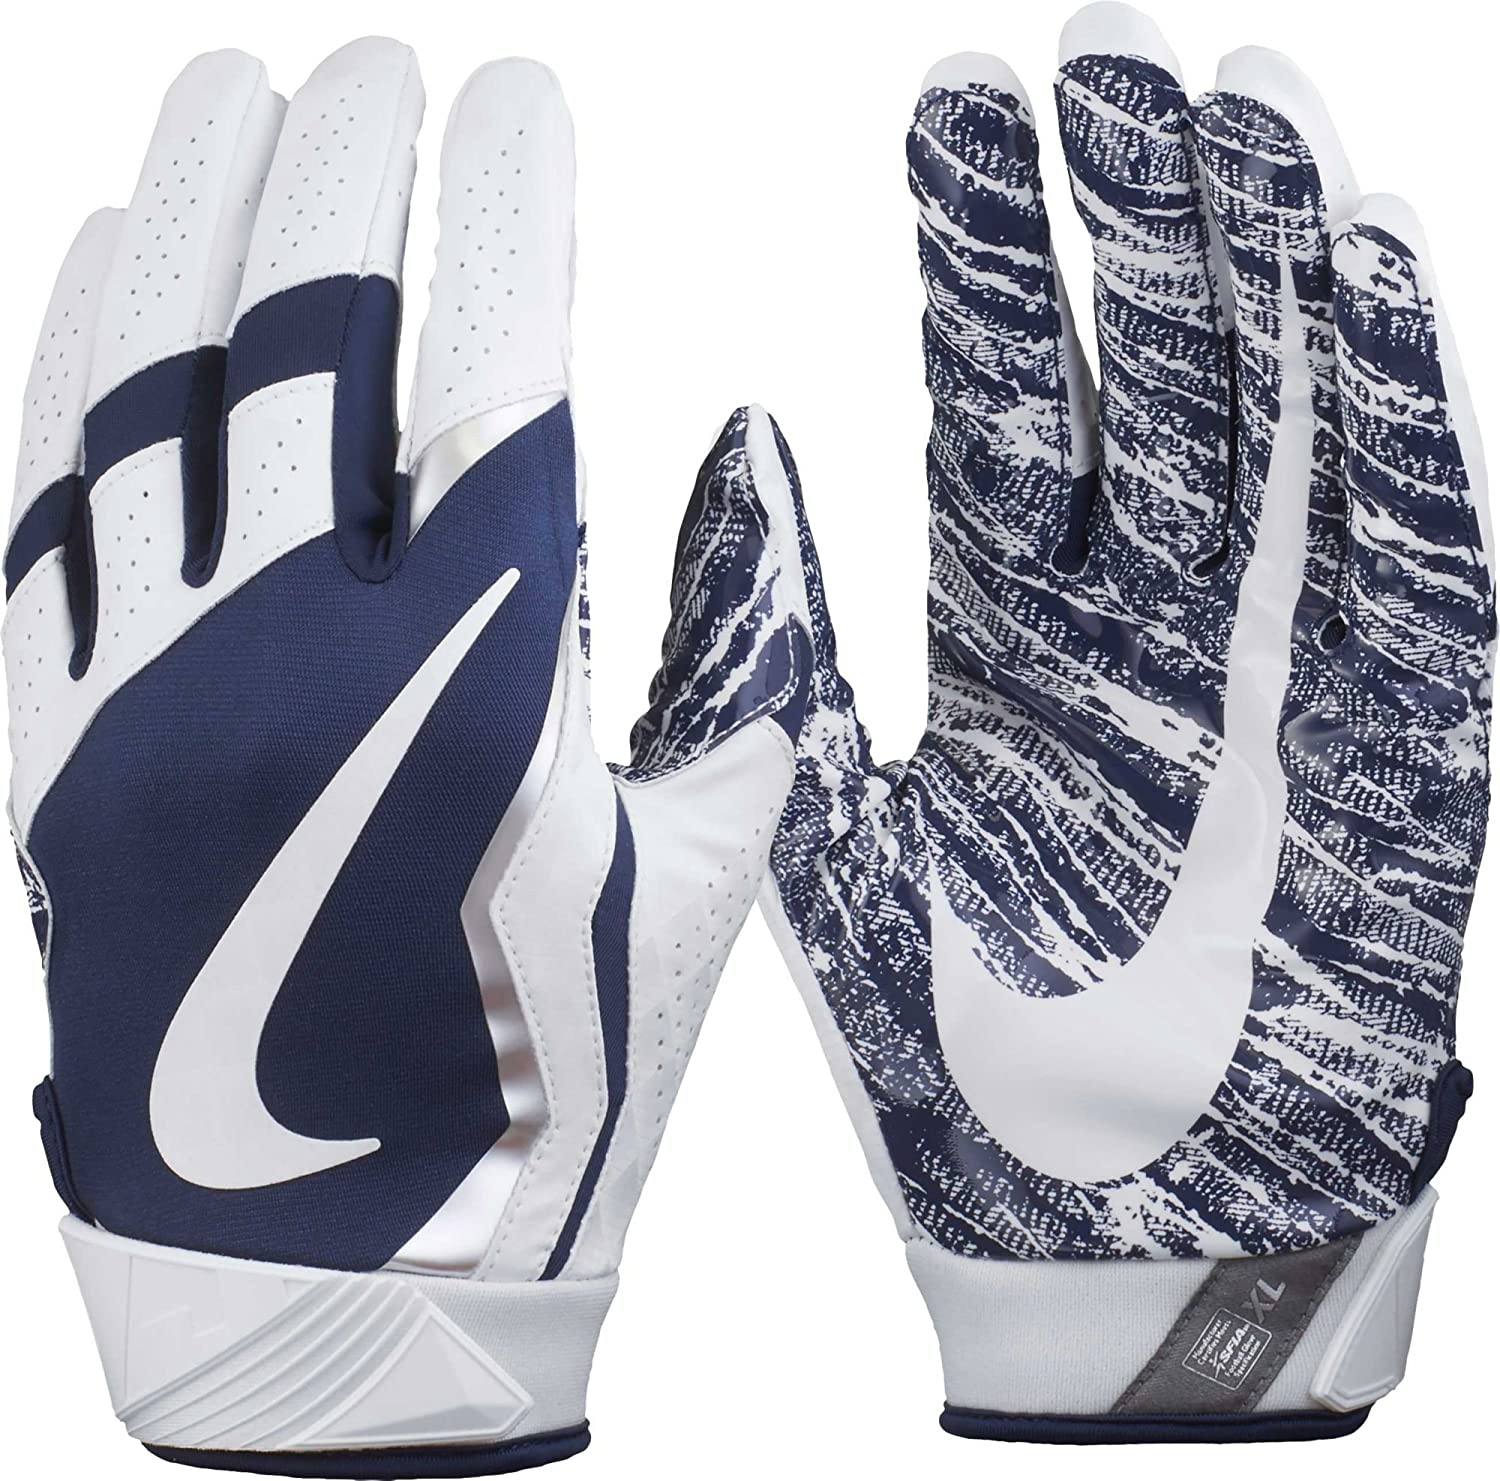 Amazon.com  Men s Nike Vapor Jet 4 Football Gloves  Sports   Outdoors c69b8f8f9